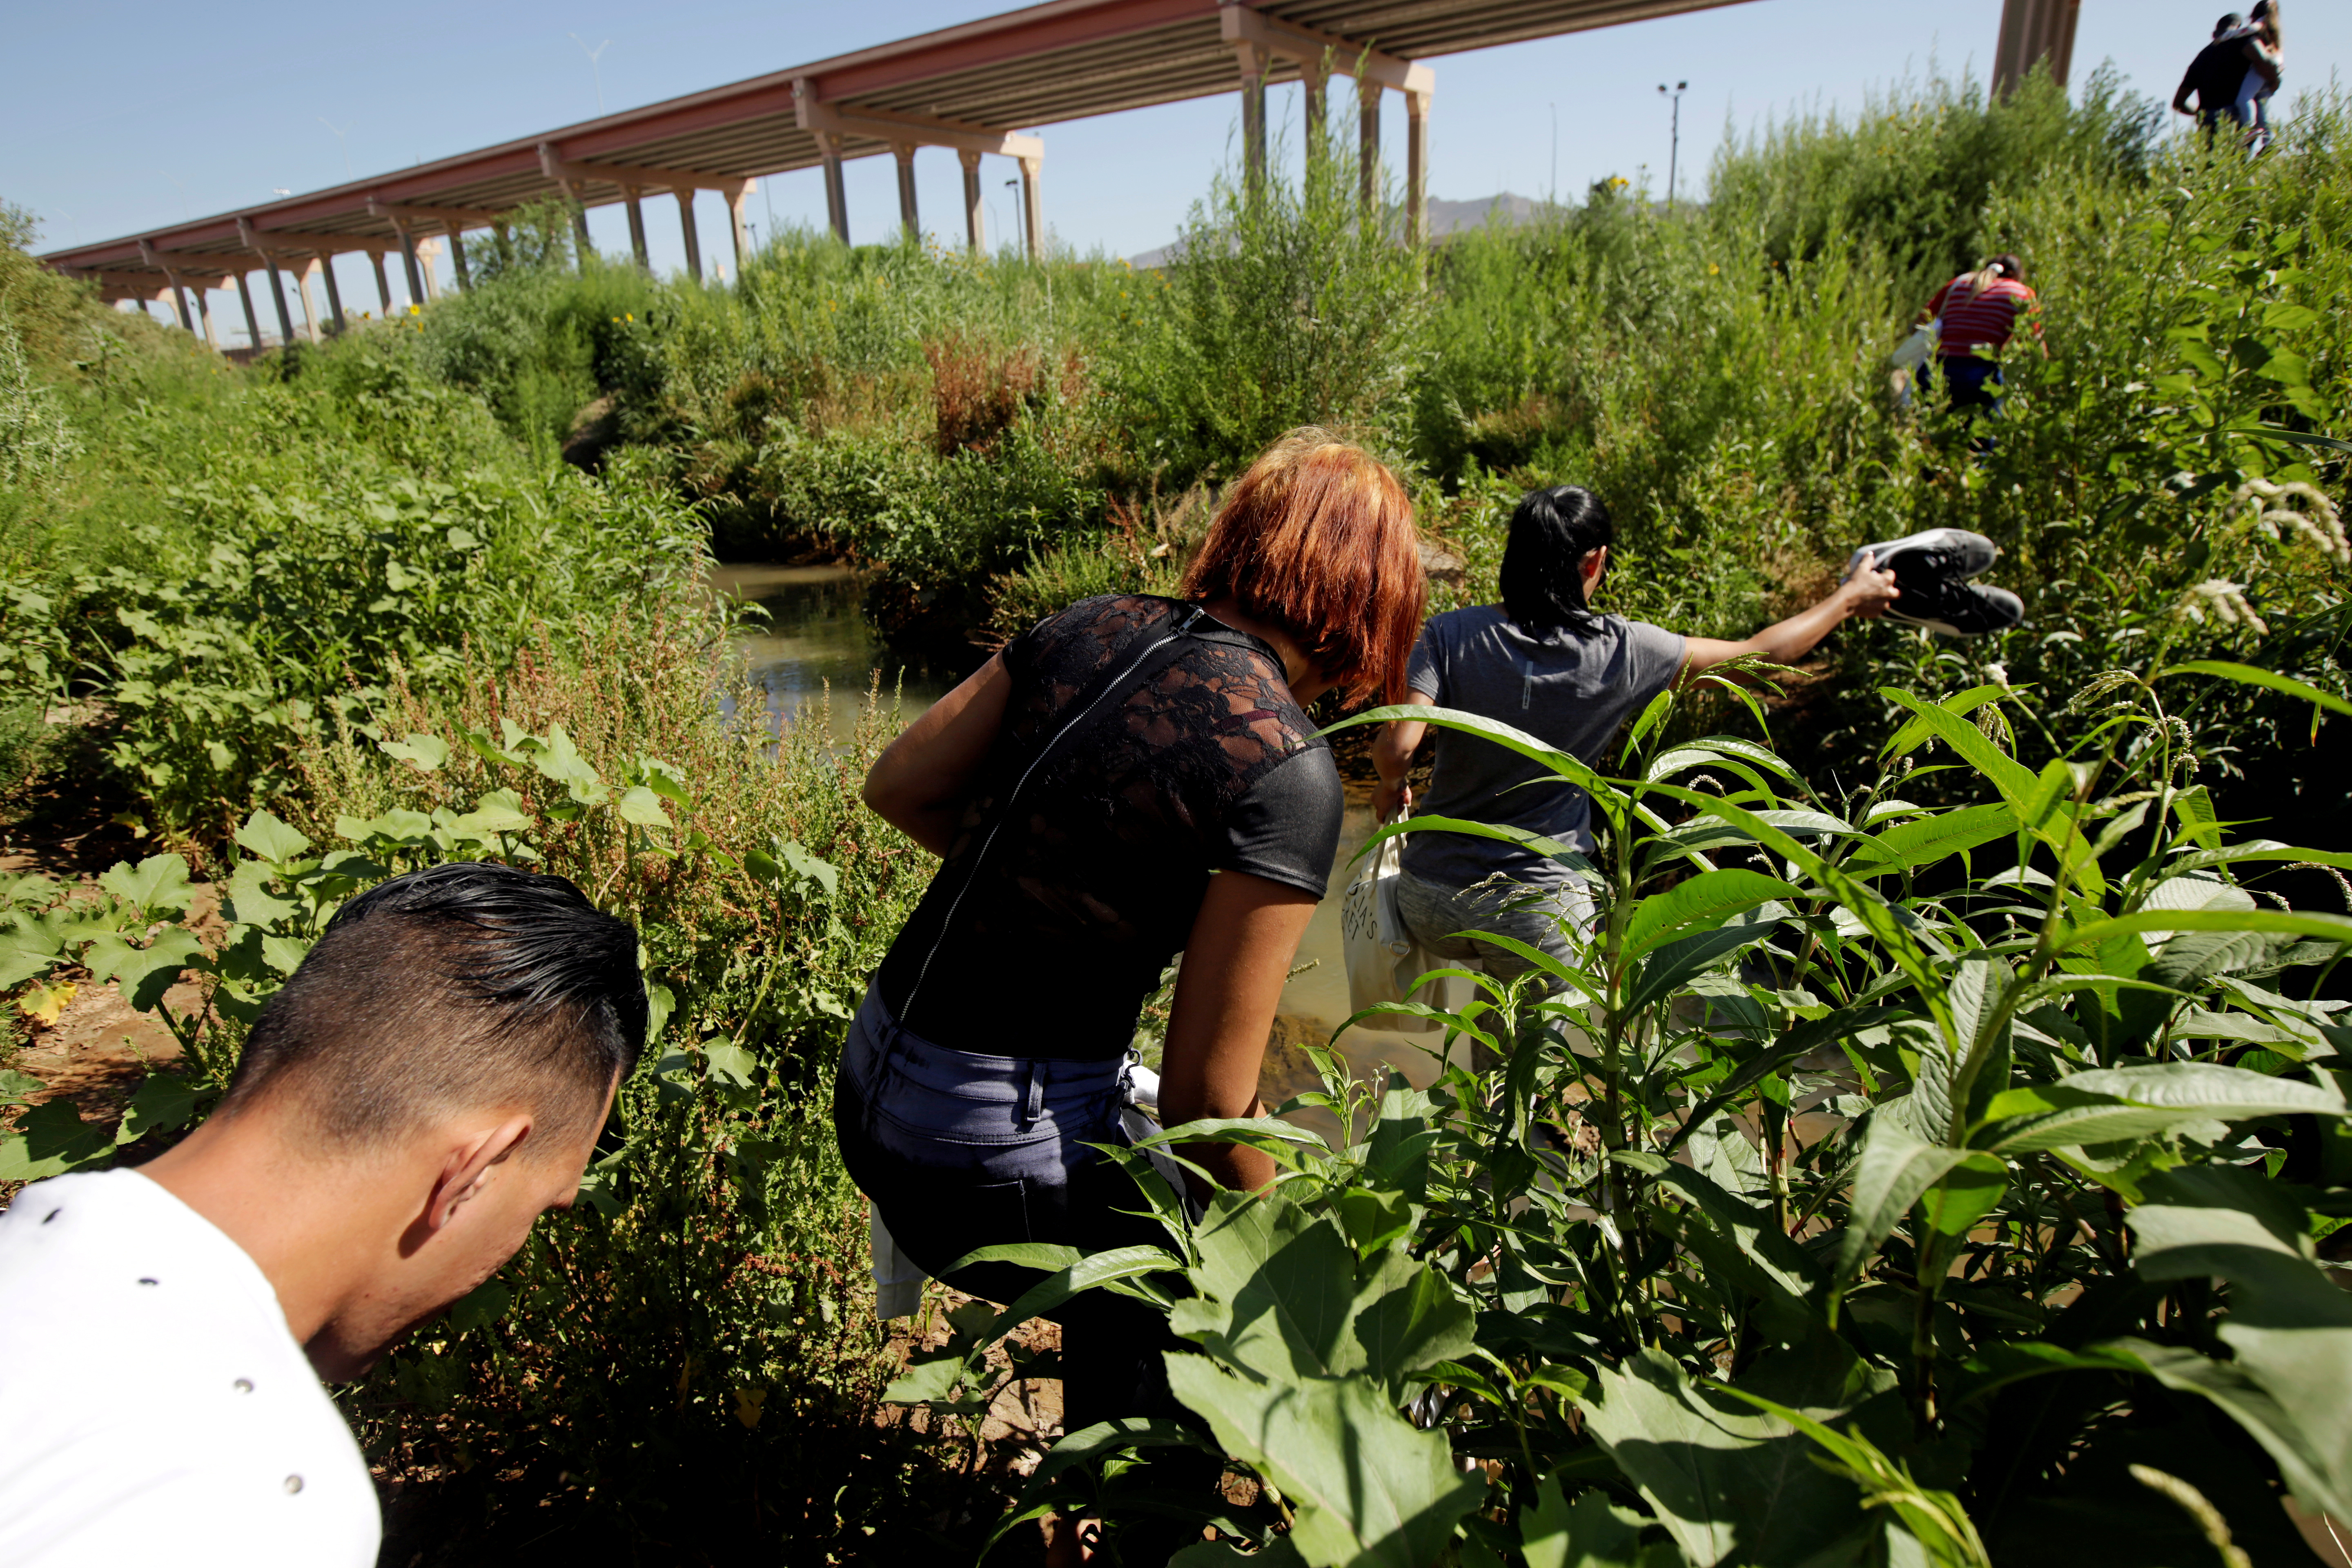 FILE PHOTO: Migrants from Cuba are seen on the banks of the Rio Bravo river as they cross illegally into the United States to turn themselves in to request asylum in El Paso, Texas, as seen from Ciudad Juarez, Mexico June 6, 2019. REUTERS/Jose Luis Gonzalez/File Photo